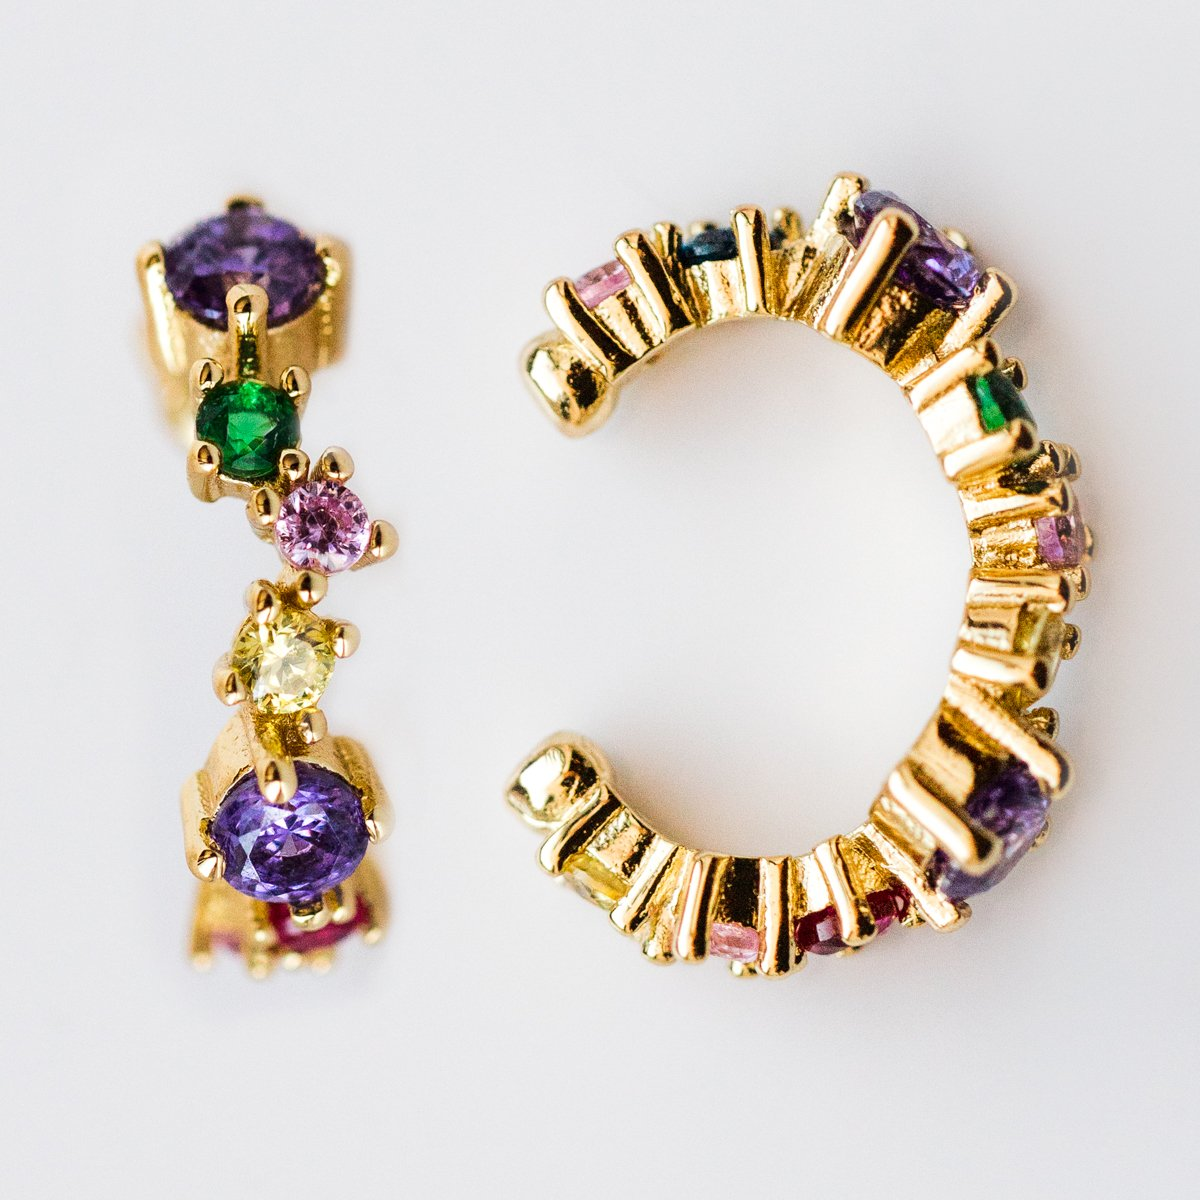 7bd367d05 Stella Ear Cuffs in Gold and Rainbow CZ - earrings - Melinda Maria local  eclectic